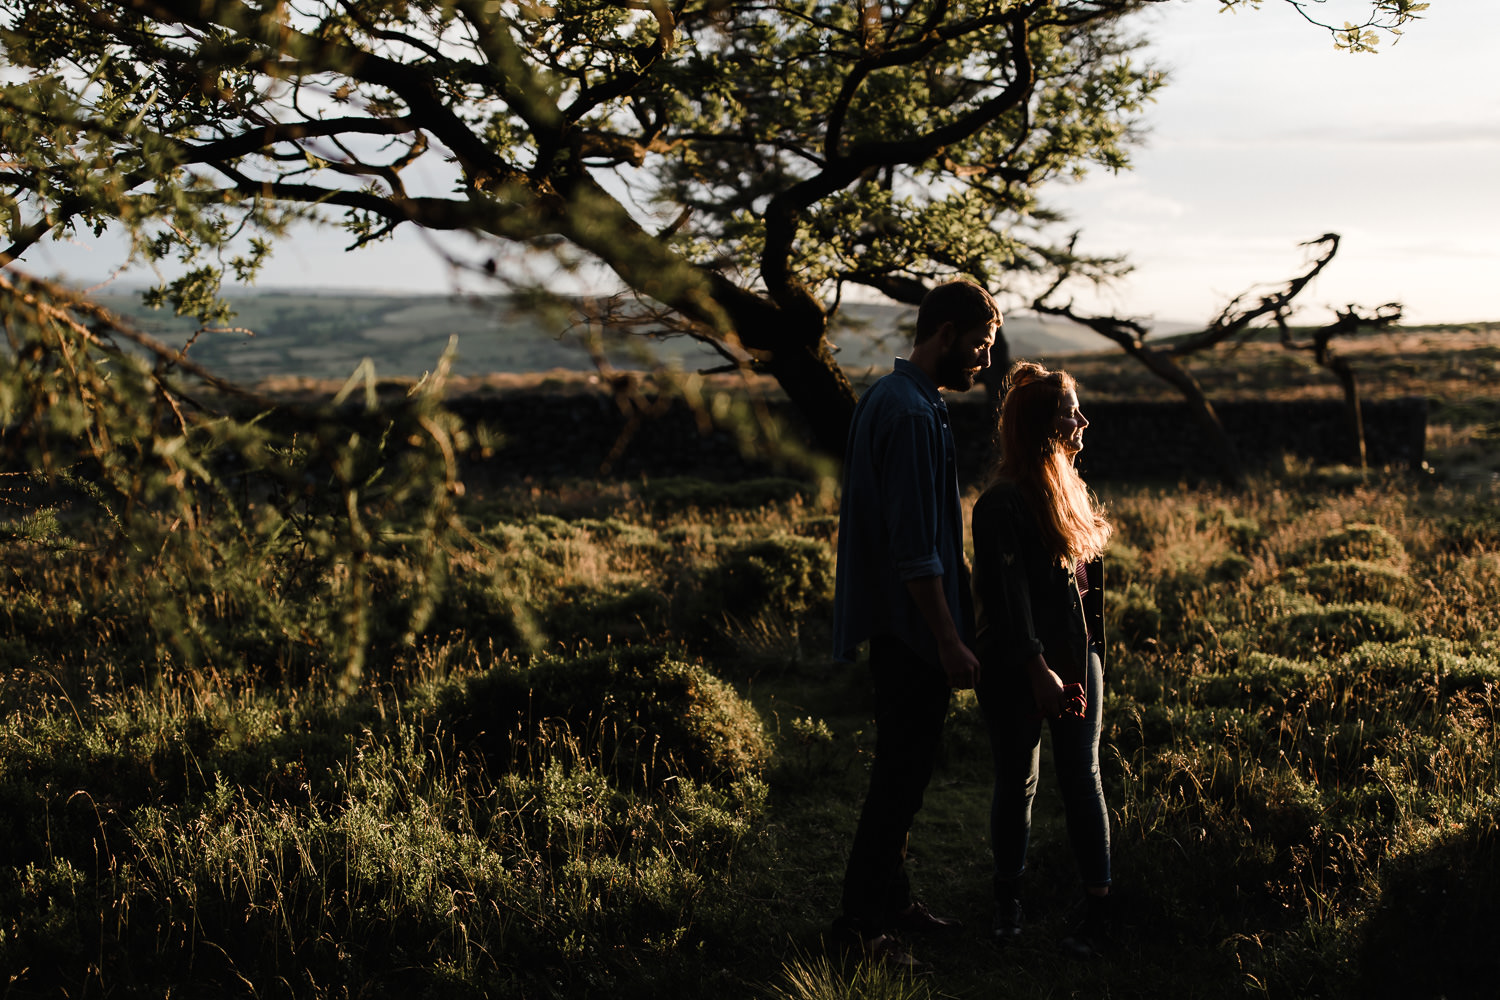 Peak_District_Engagement_Shoot_Prewed_Couple_Shoot_-77.jpg